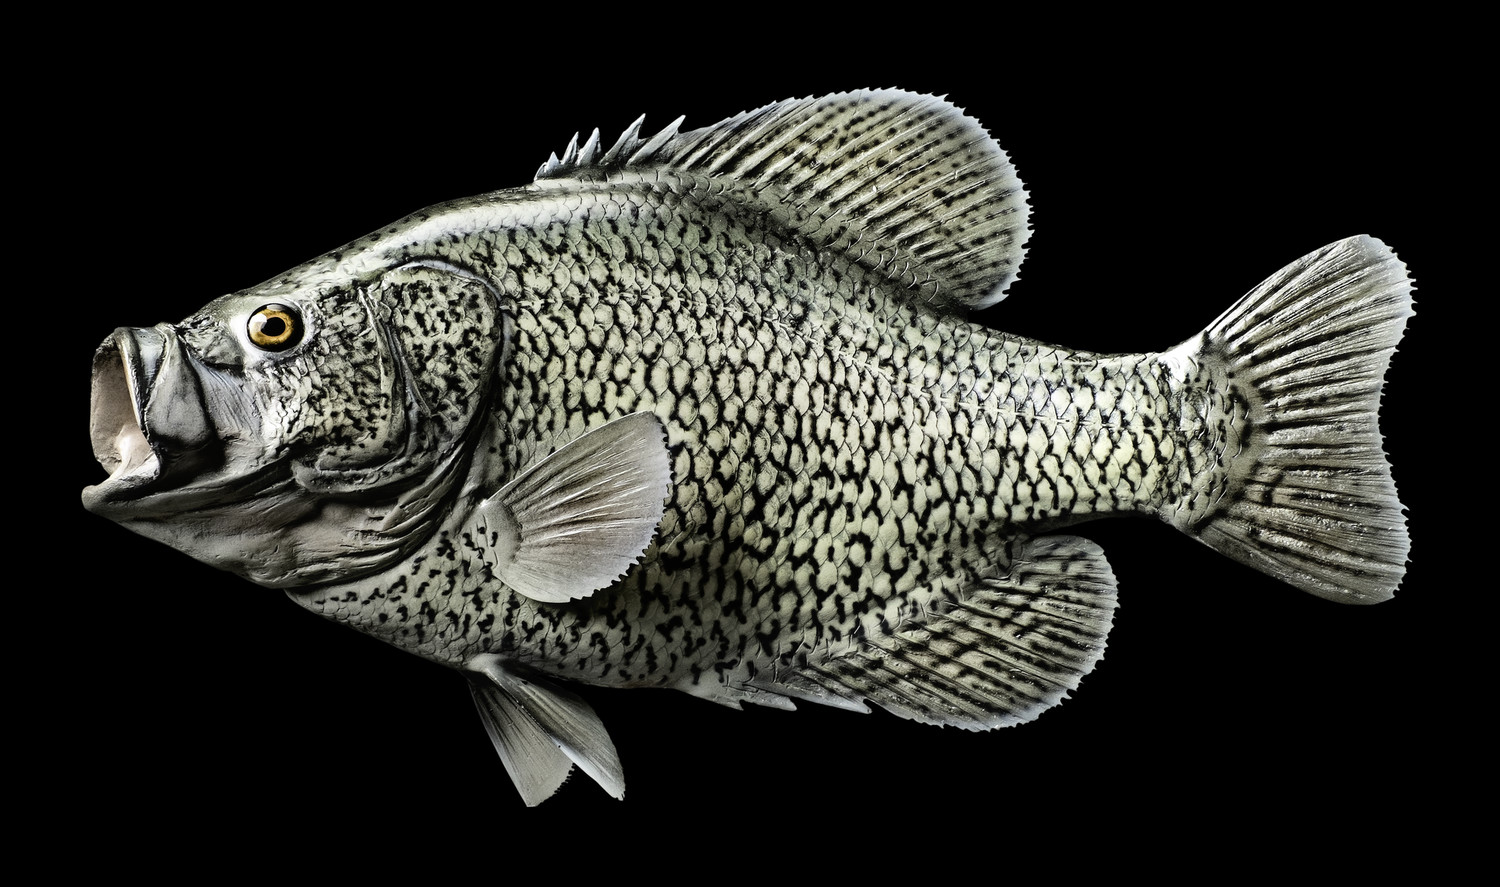 Calico bass crappie fish mount and fish replicas for Pictures of crappie fish